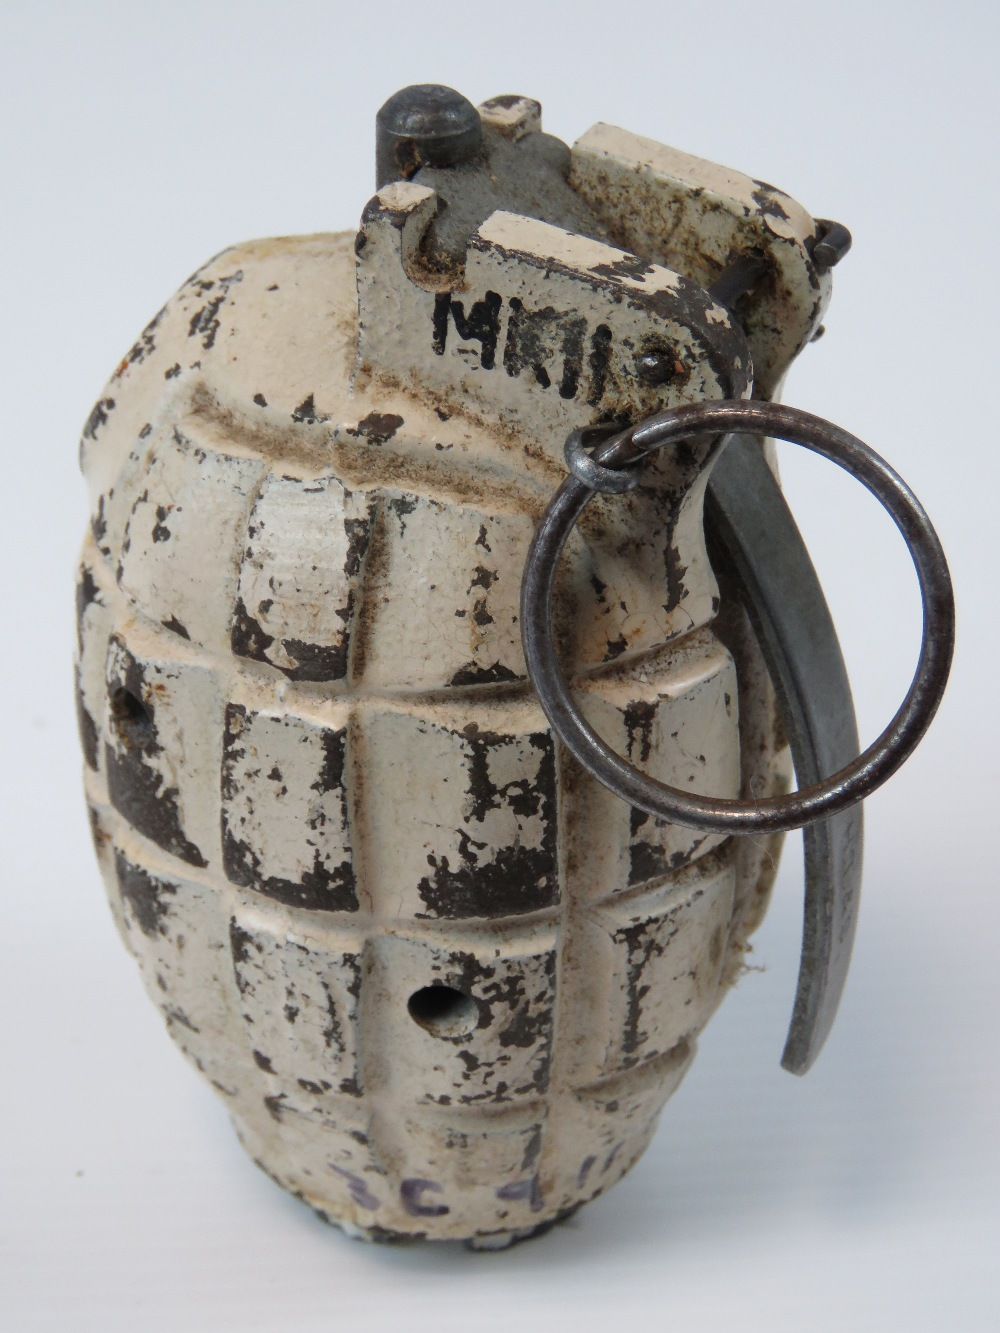 An inert British WWII Mk2 Mills grenade, painted in Artic /Winter camouflage, fuse plug dated 1945.